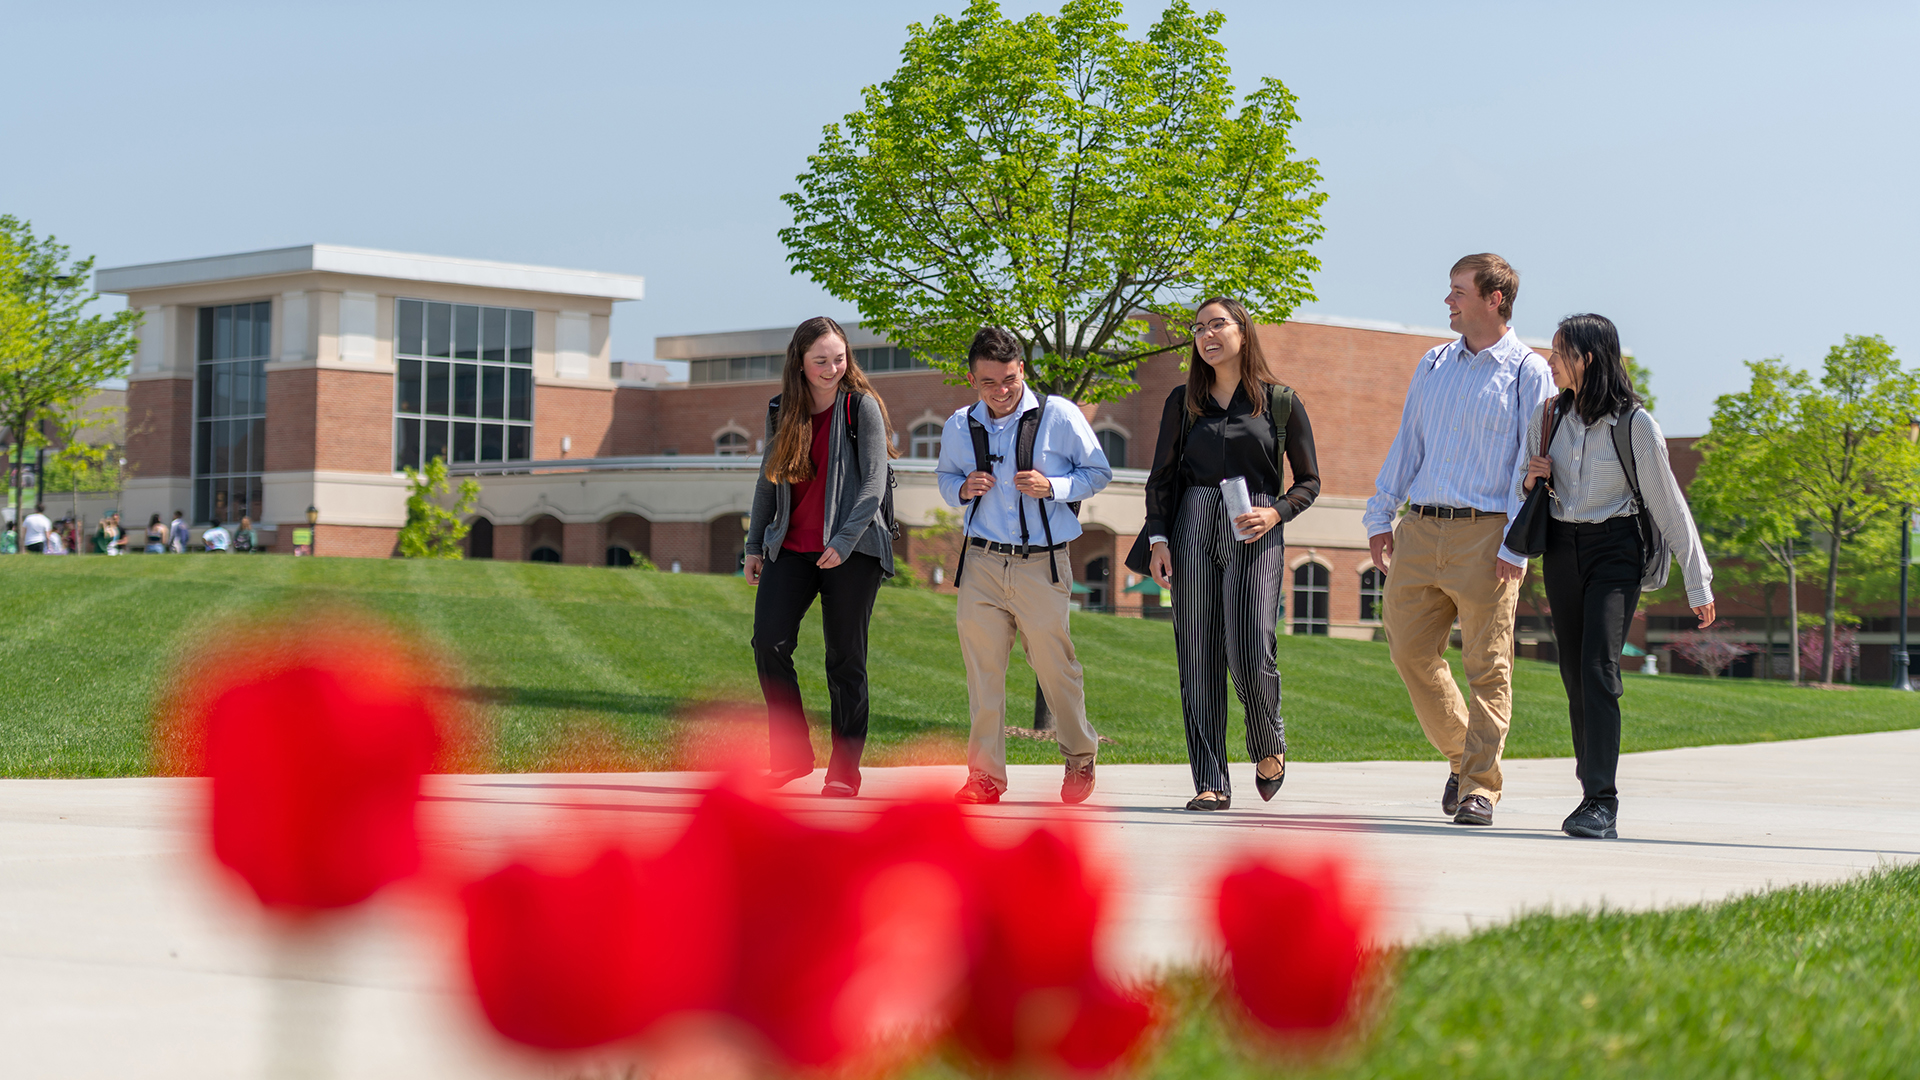 Students enjoying a walk on the quad at Stevenson University